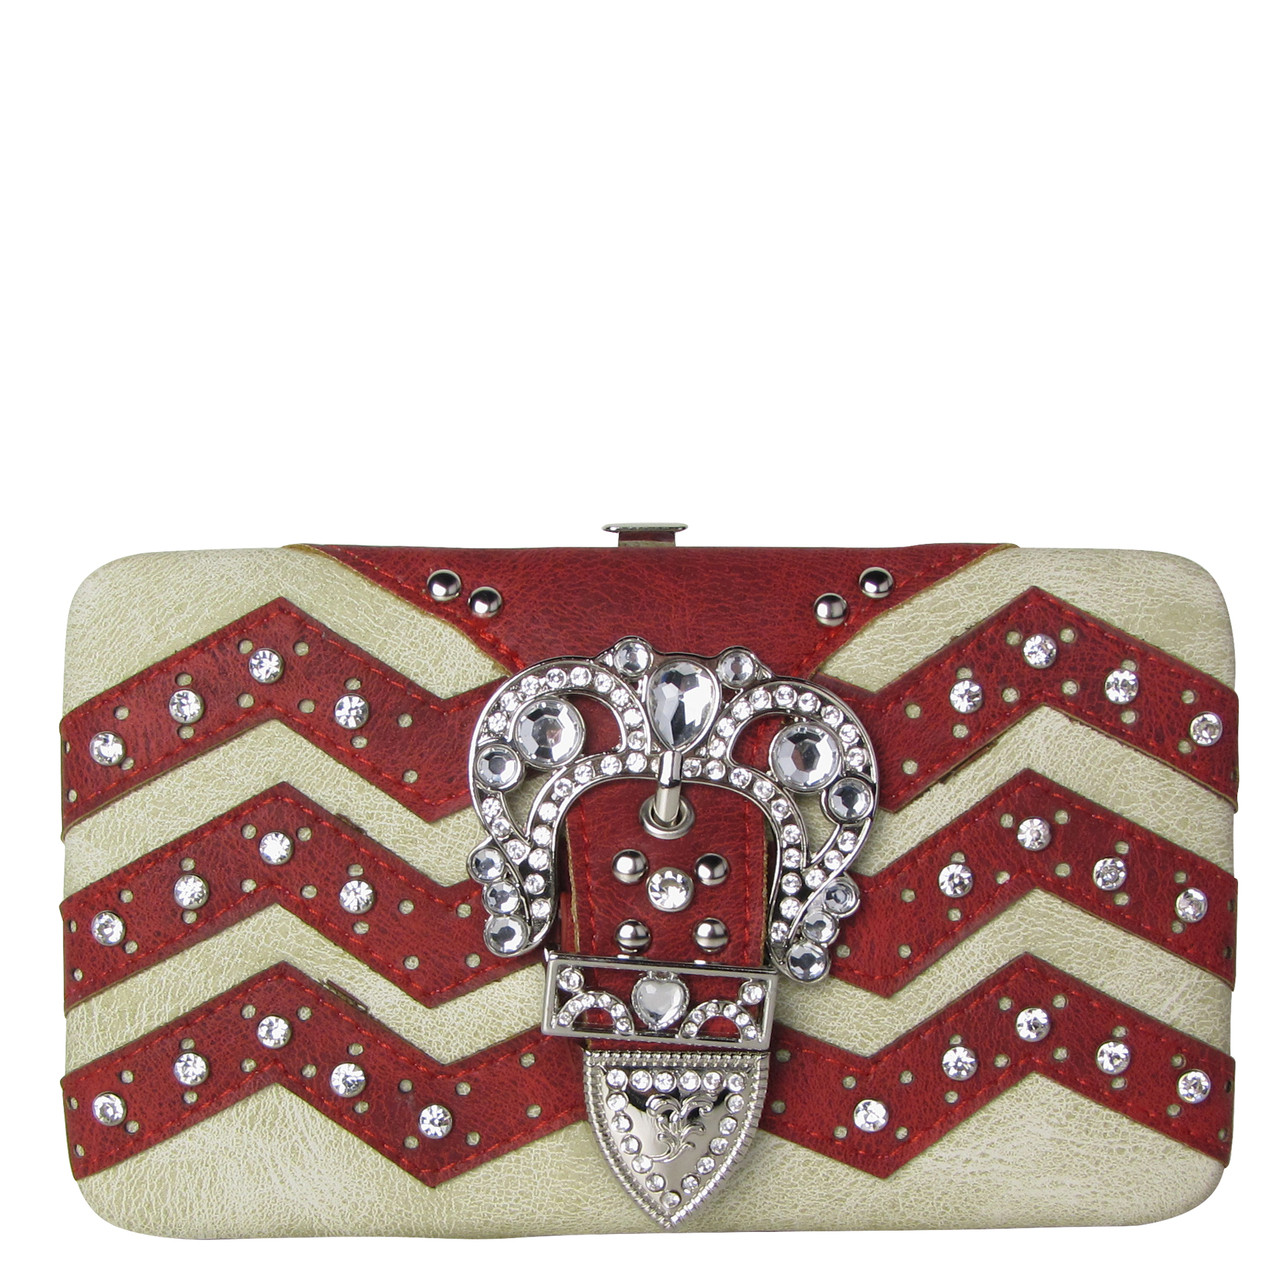 RED CHEVRON RHINESTONE BUCKLE LOOK FLAT THICK WALLET FW2-12113RED